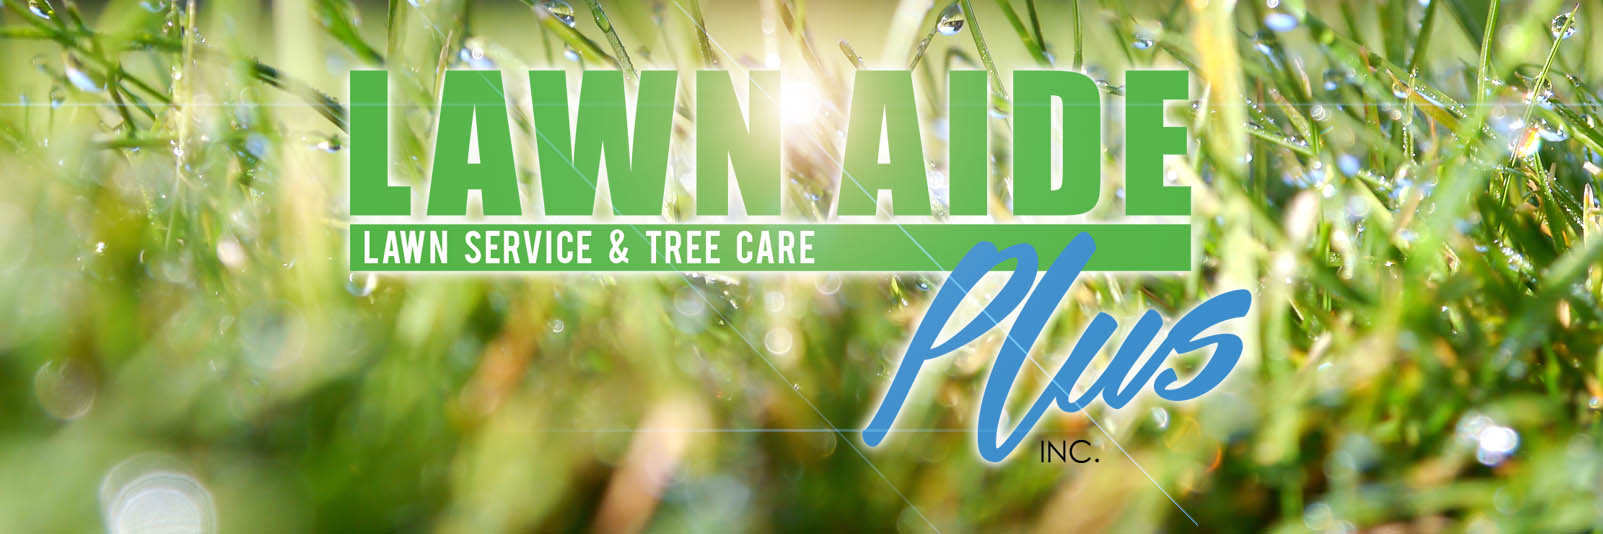 TREE CARE SERVICE CARROL MARYLAND